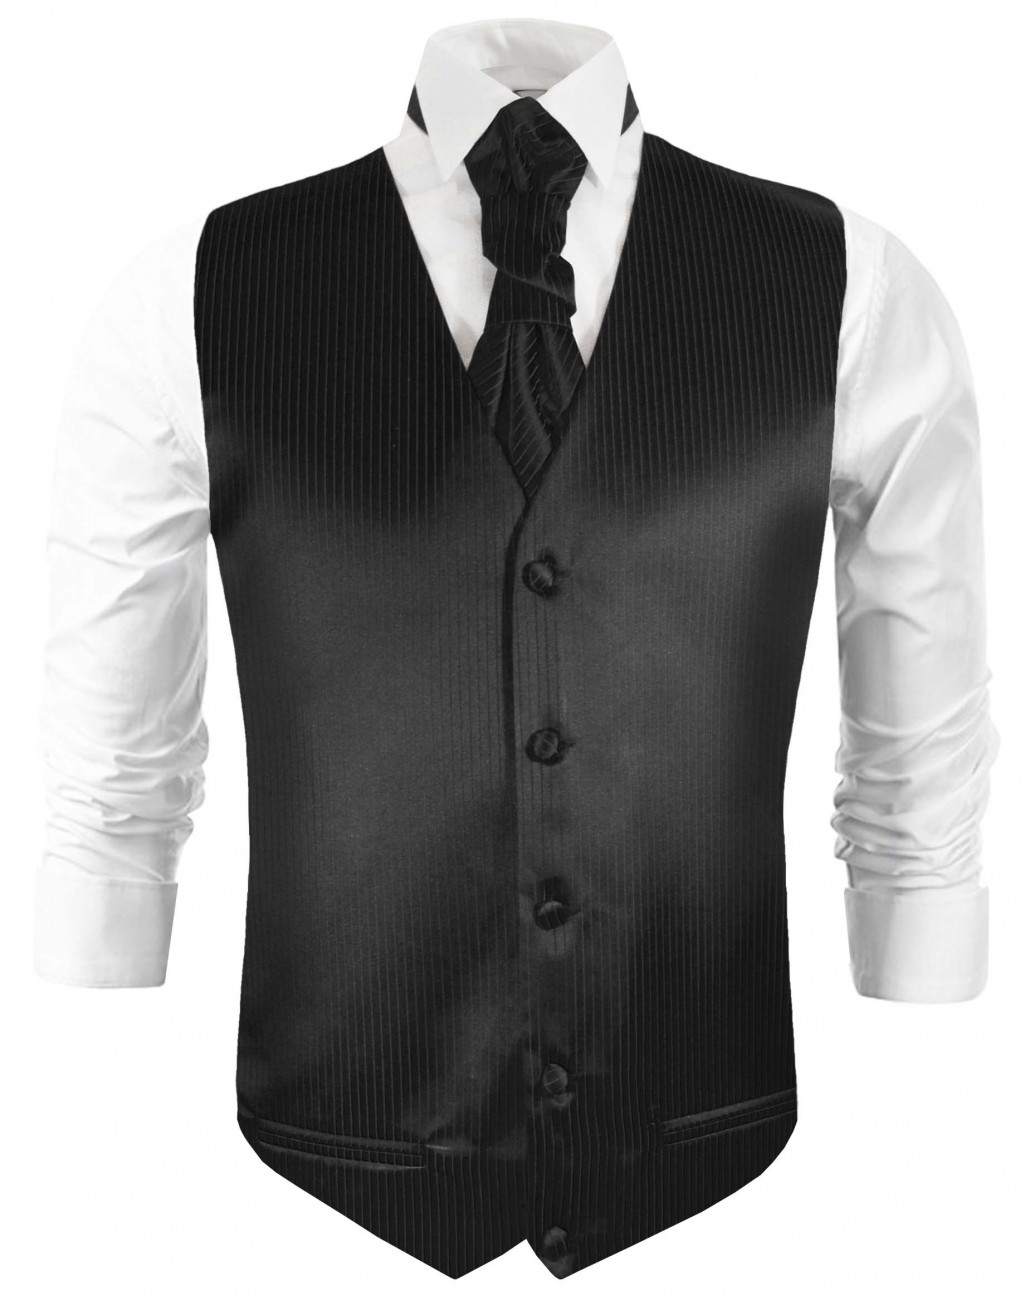 Black waistcoat for wedding with necktie ascot tie pocket square and cufflinks v21